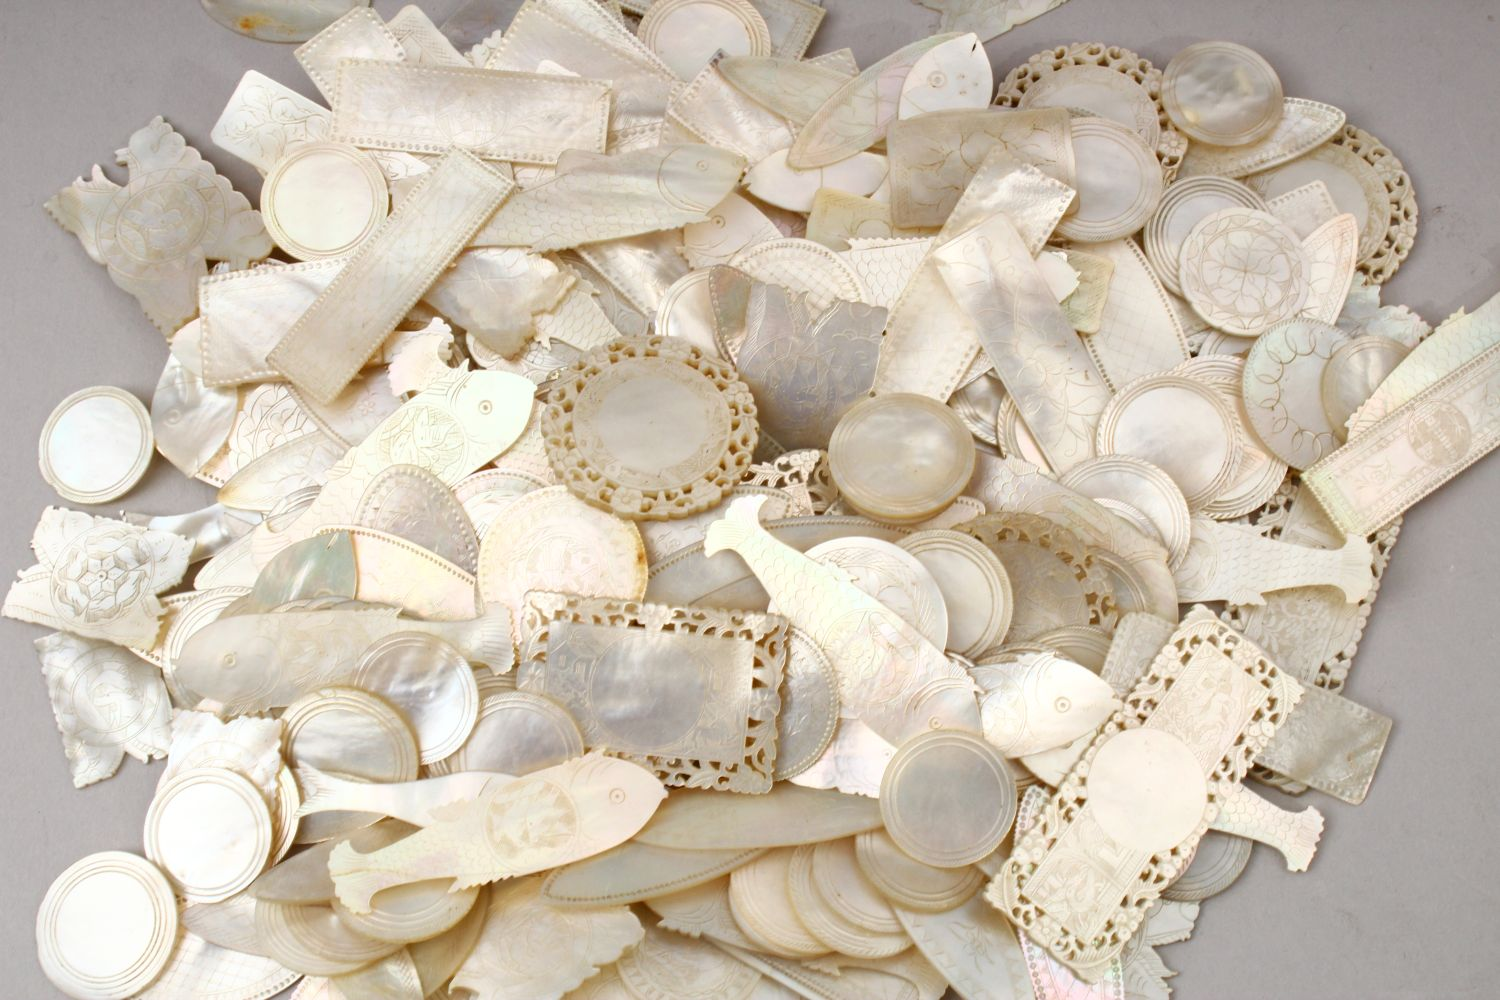 A QUANTITY OF 19TH CENTURY CHINESE CARVED MOTHER OF PEARL GAME COUNTERS, various styles an sizes. - Image 9 of 9